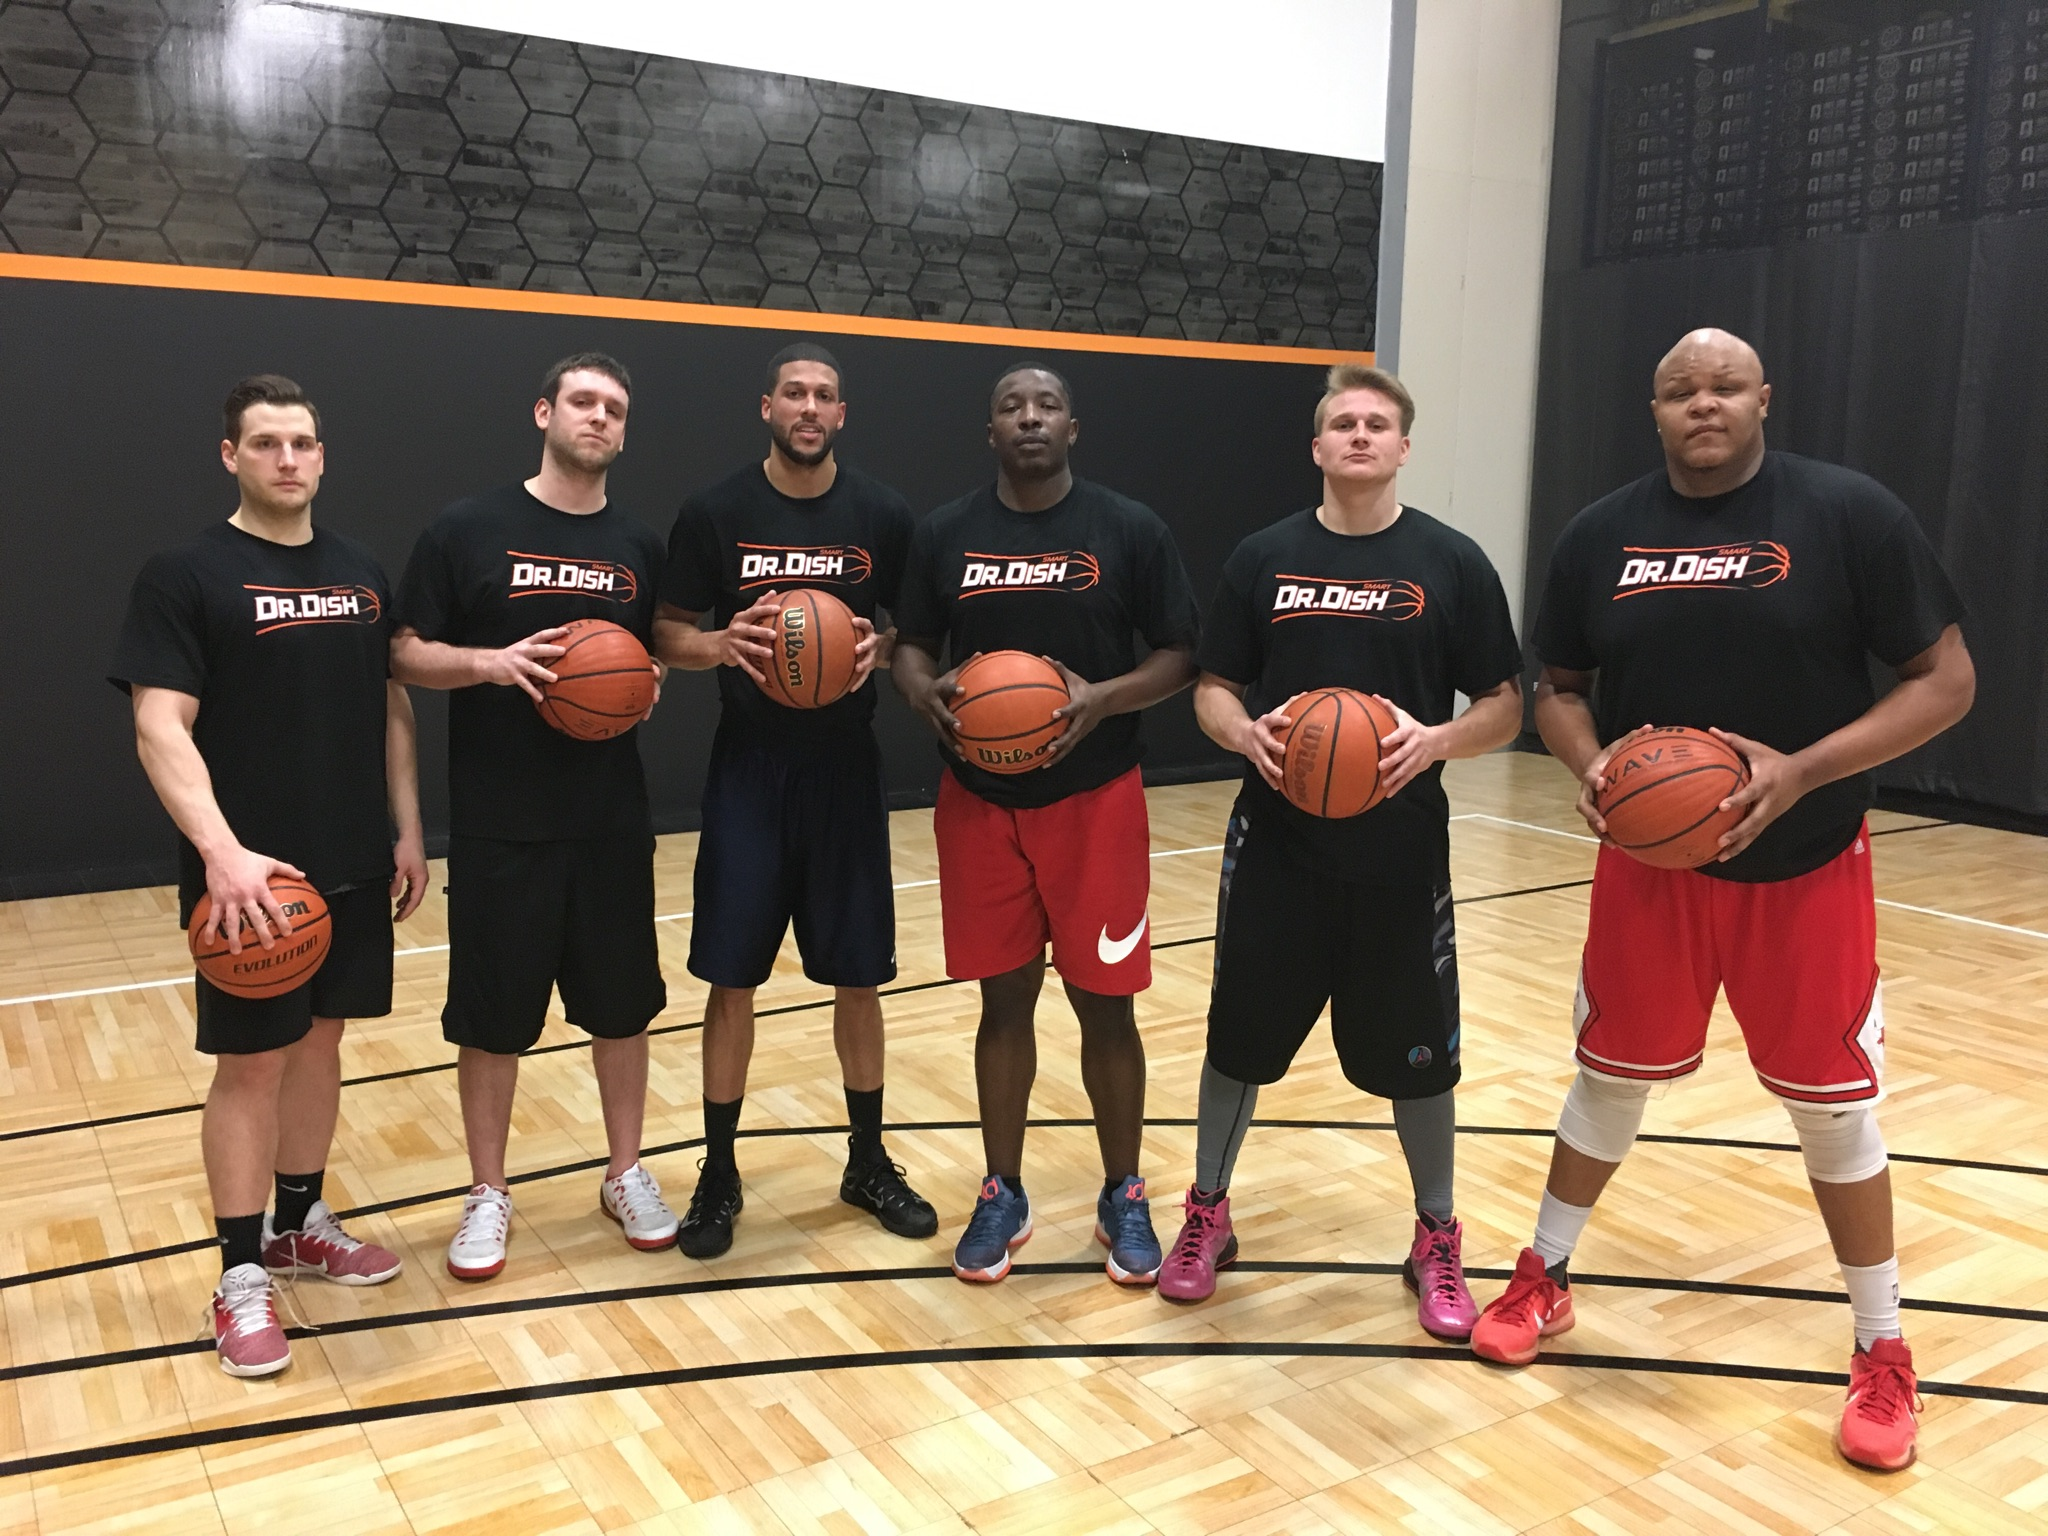 Basketball Shooting Drills: Advanced Team Drills